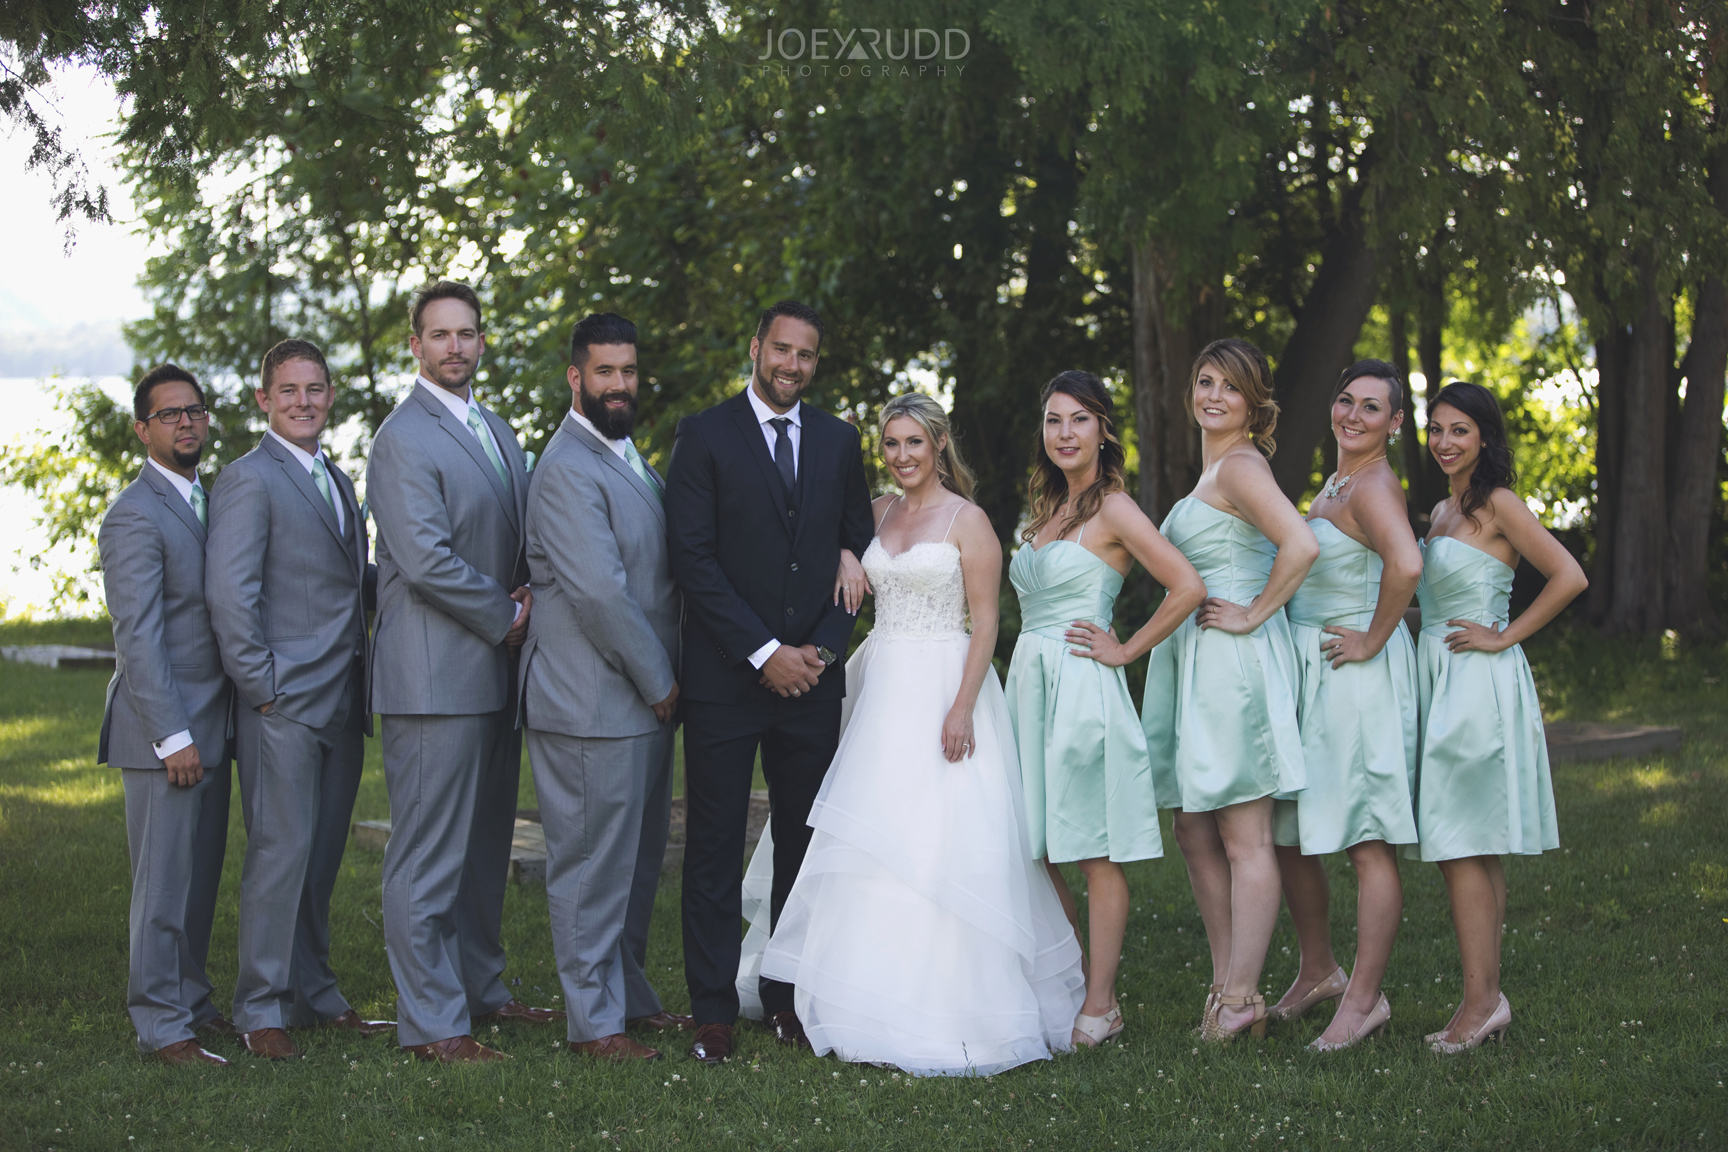 Calabogie Wedding at Barnet Park by Ottawa Wedding Photographer Joey Rudd Photography Wedding Party